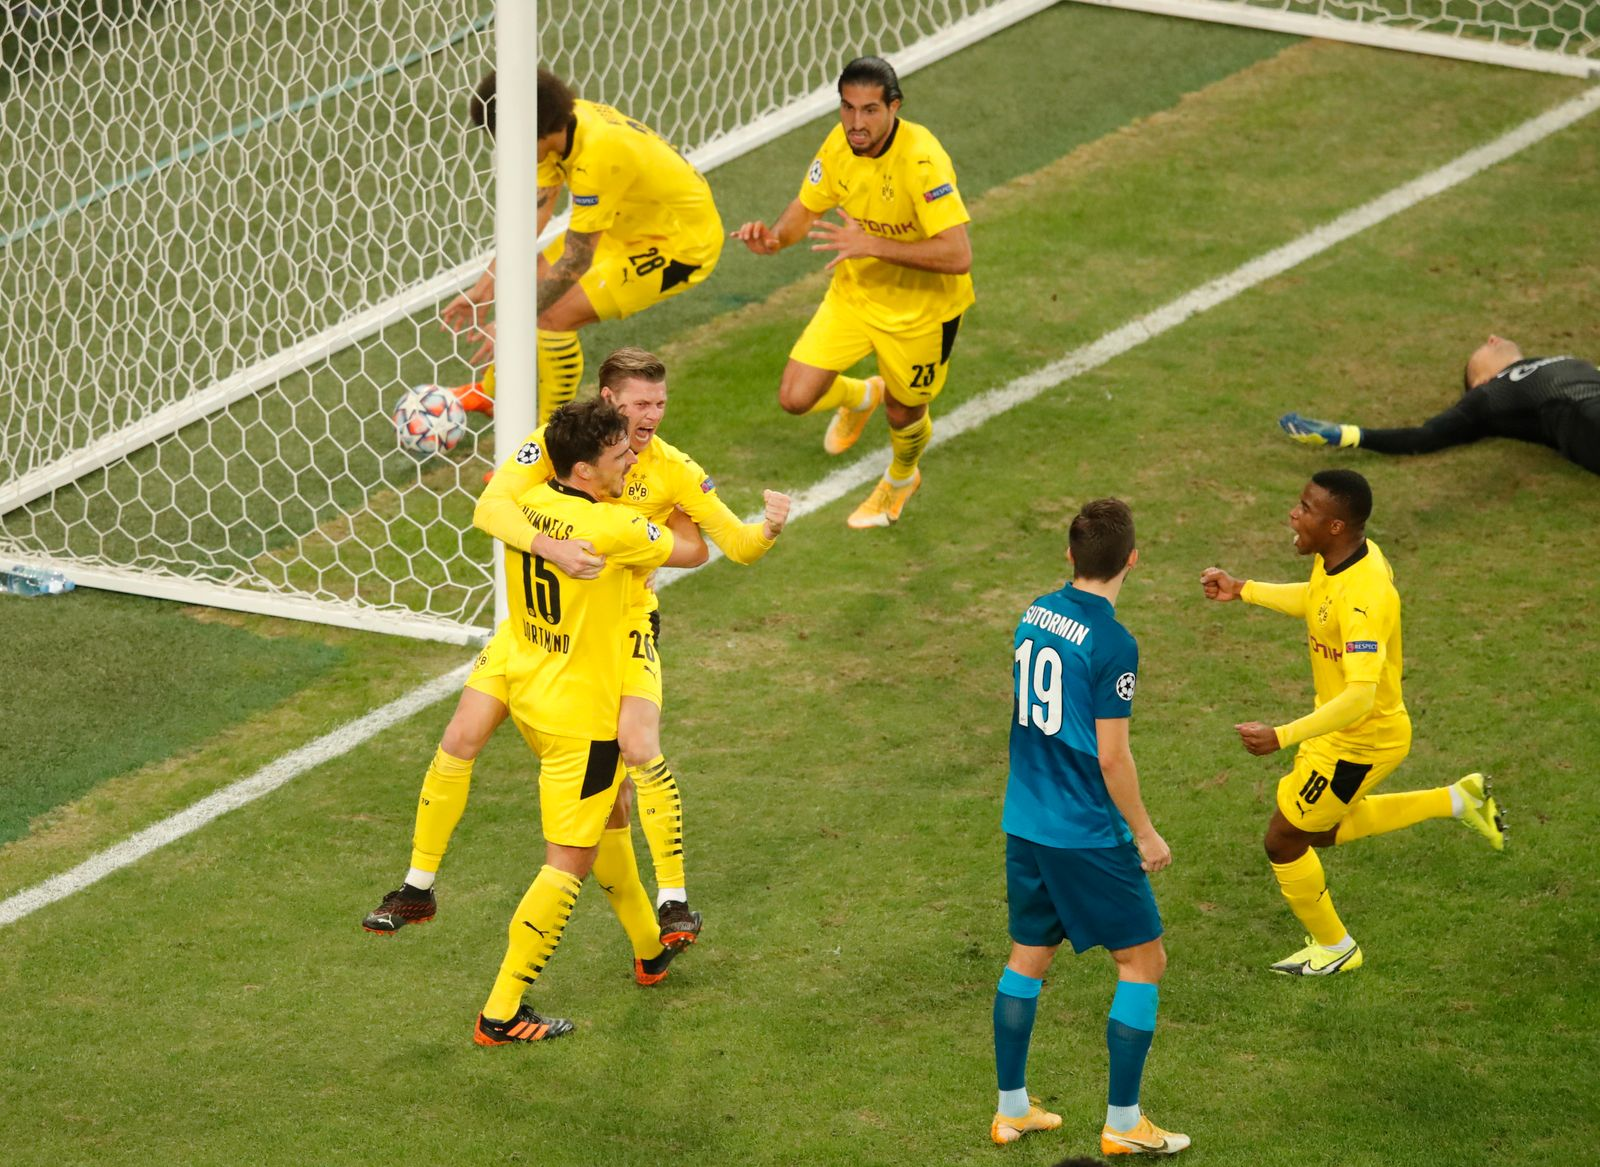 Champions League - Group F - Zenit Saint Petersburg v Borussia Dortmund